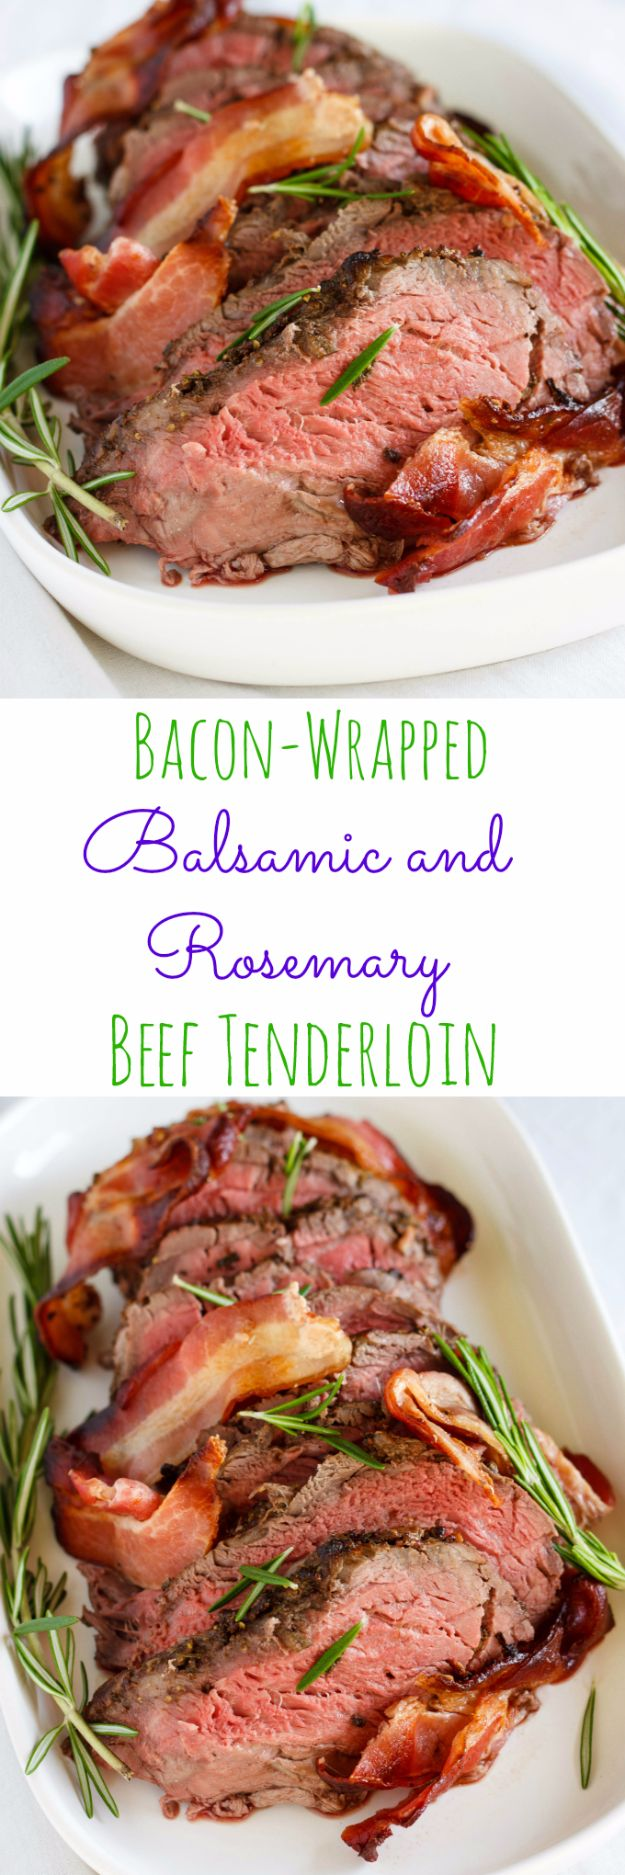 Best Easter Dinner Recipes - Bacon-Wrapped Balsamic and Rosemary Beef Tenderloin - Easy Recipe Ideas for Easter Dinners and Holiday Meals for Families - Side Dishes, Slow Cooker Recipe Tutorials, Main Courses, Traditional Meat, Vegetable and Dessert Ideas - Desserts, Pies, Cakes, Ham and Beef, Lamb - DIY Projects and Crafts by DIY JOY